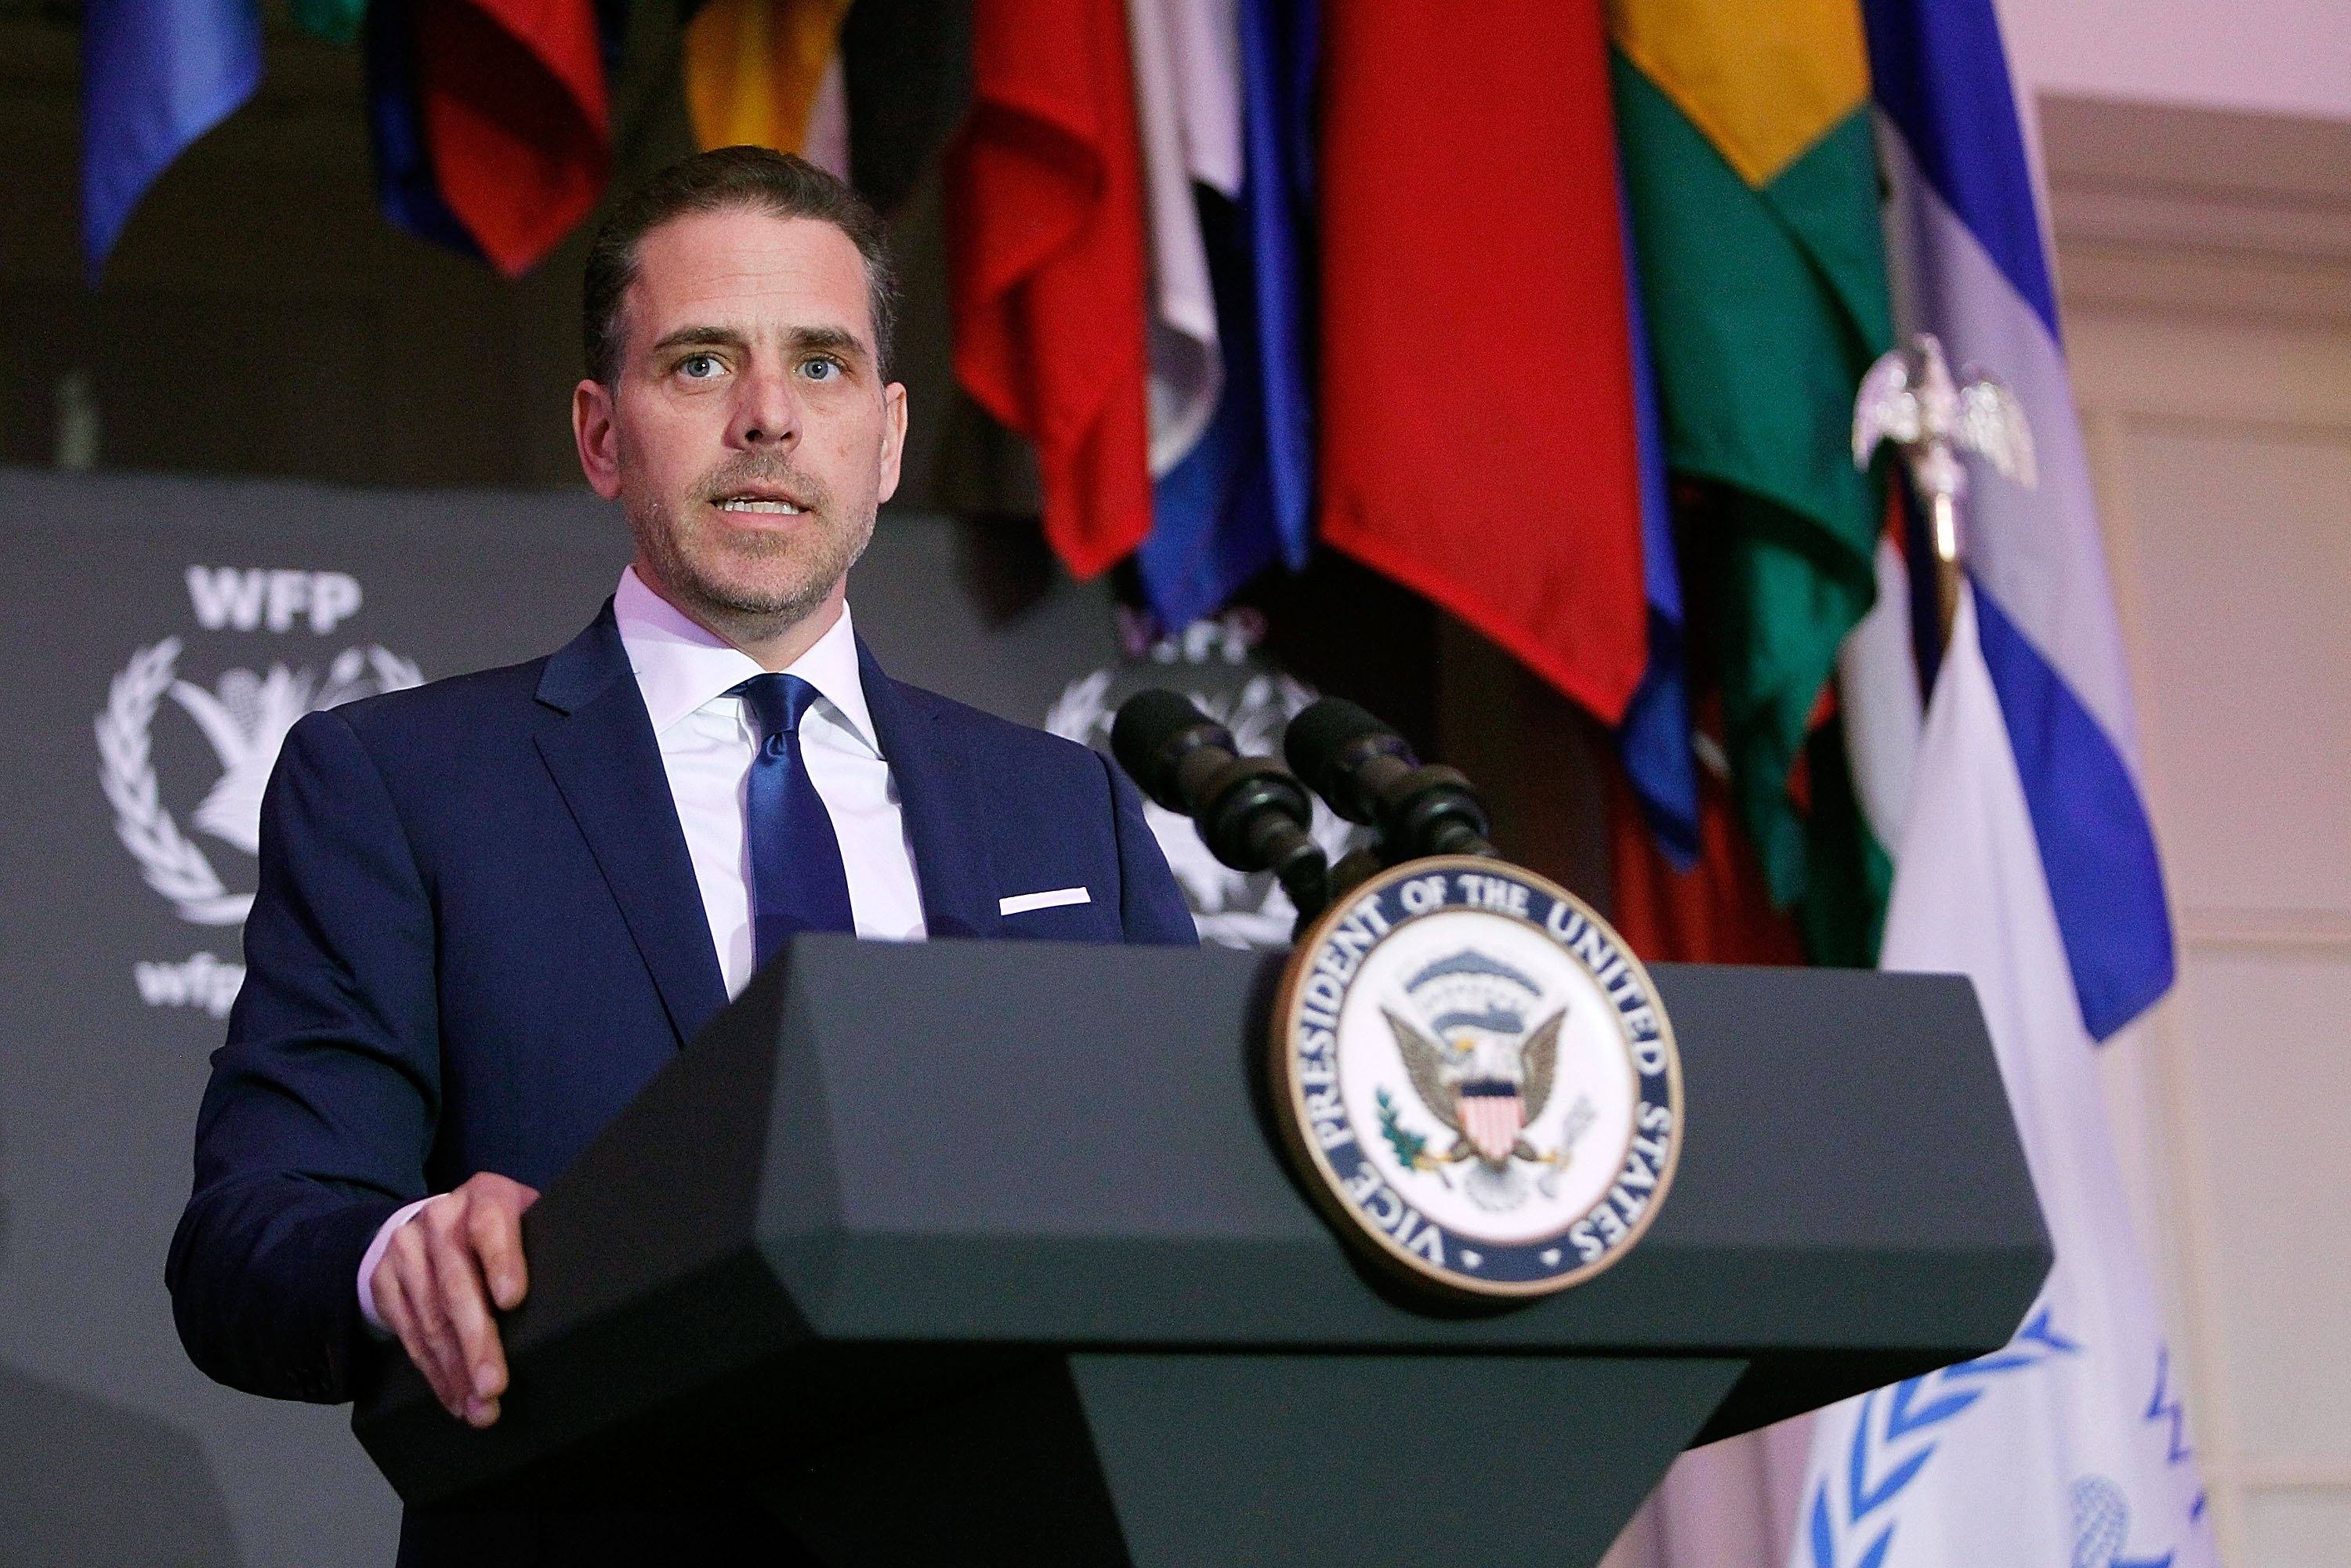 Hunter Biden sits down for TV interview amid Trump's attacks on his business dealings